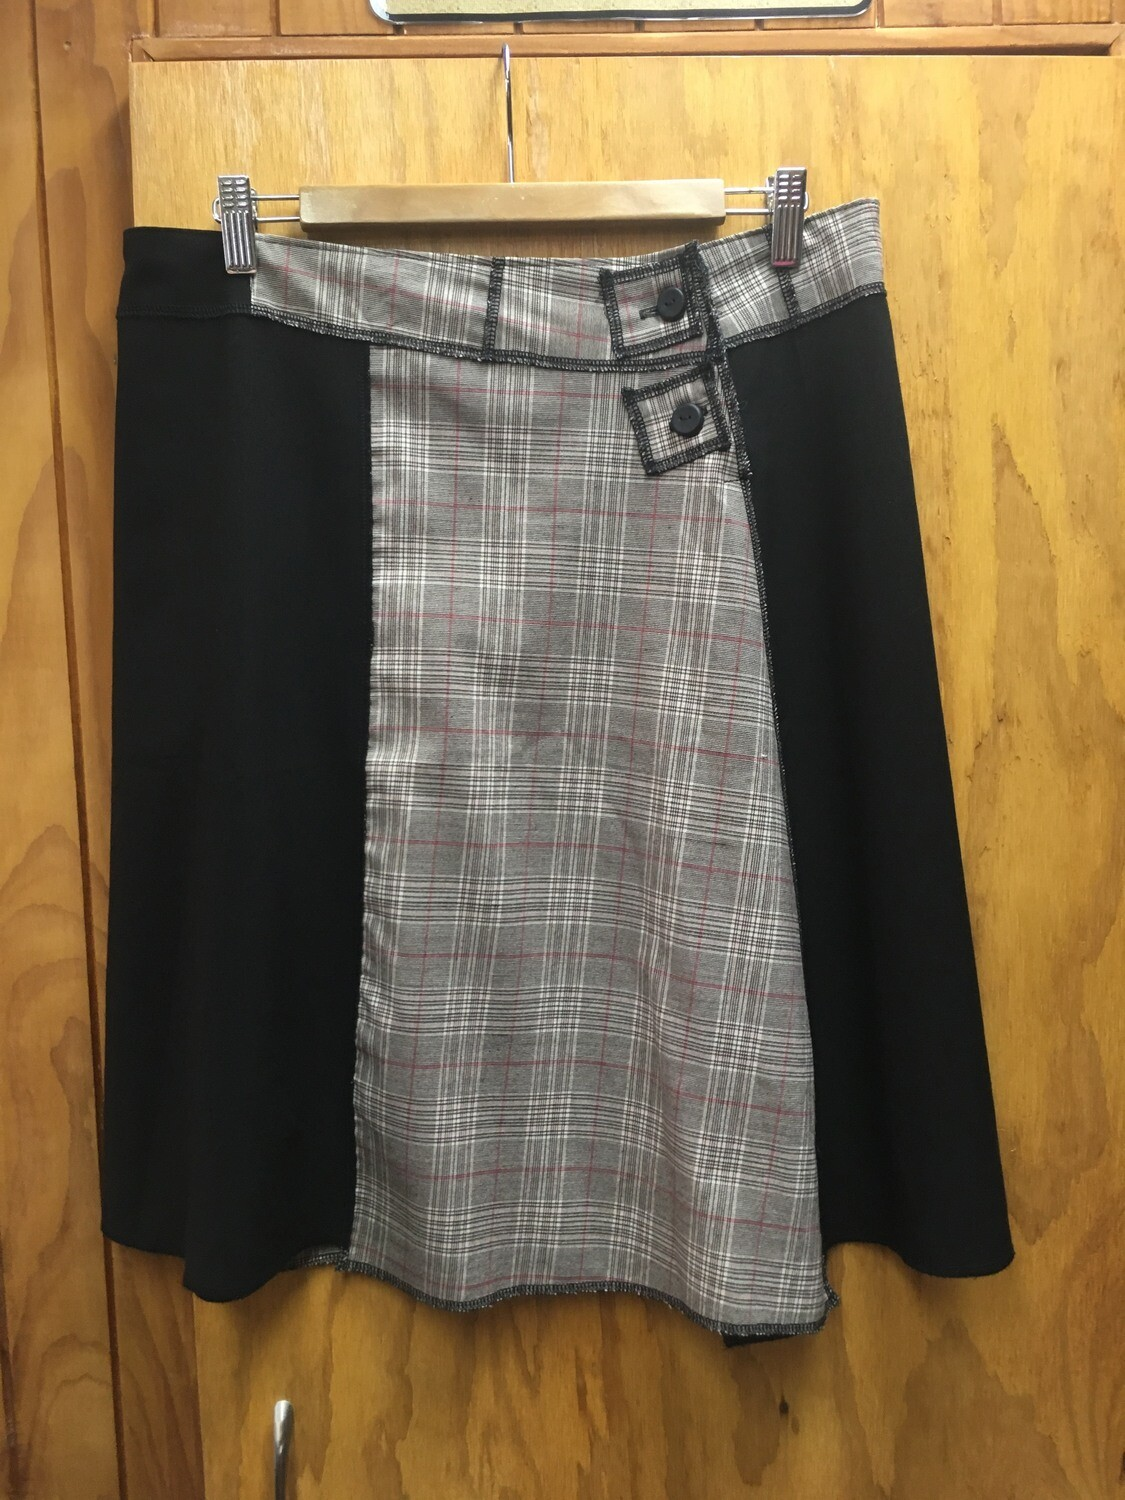 Black & Check Asymmetric Skirt - Size 12